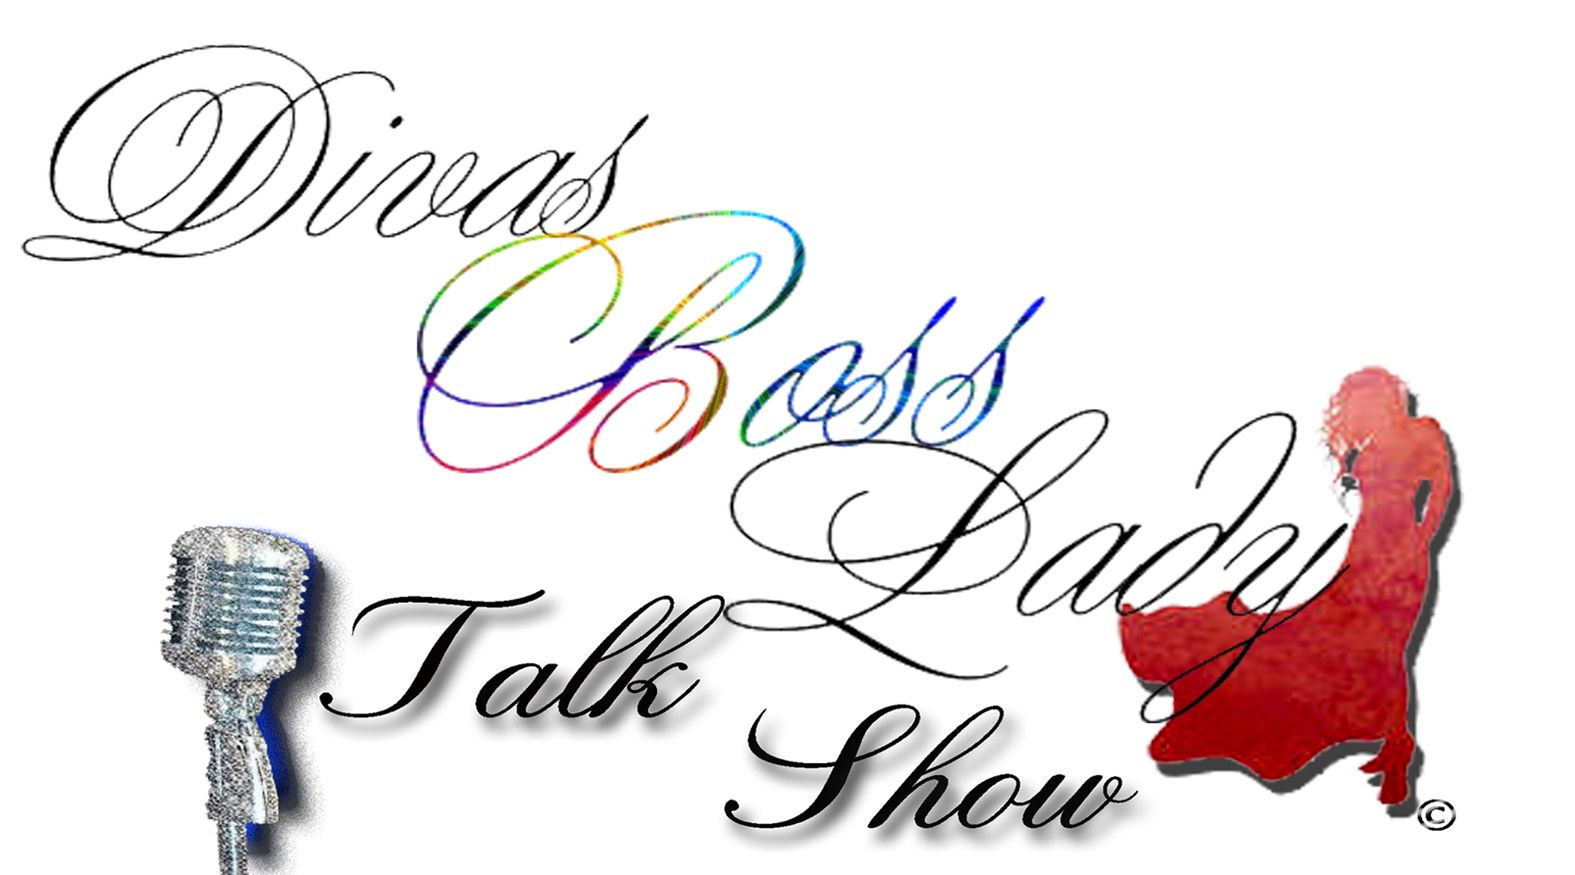 Email divasbosslady@gmail.com or 980-224-0107 if you are interested any of the following: *Divas Boss Lady Talk Show* 1) video commercial $45 2) sponsorship $25,$50,$75,100, or $150 3) Part of studio audience taping Sun Oct 13 at 4pm *IYWRadio* 1) audio commercial advertising $35(2weeks) $50(1 month) 2)submitting your story of struggle to triumph 1hr featured radio interview  *It's A Community Affair Holiday Campaign* 1)holding a drive to give food, toys,& toiletries to help families who…